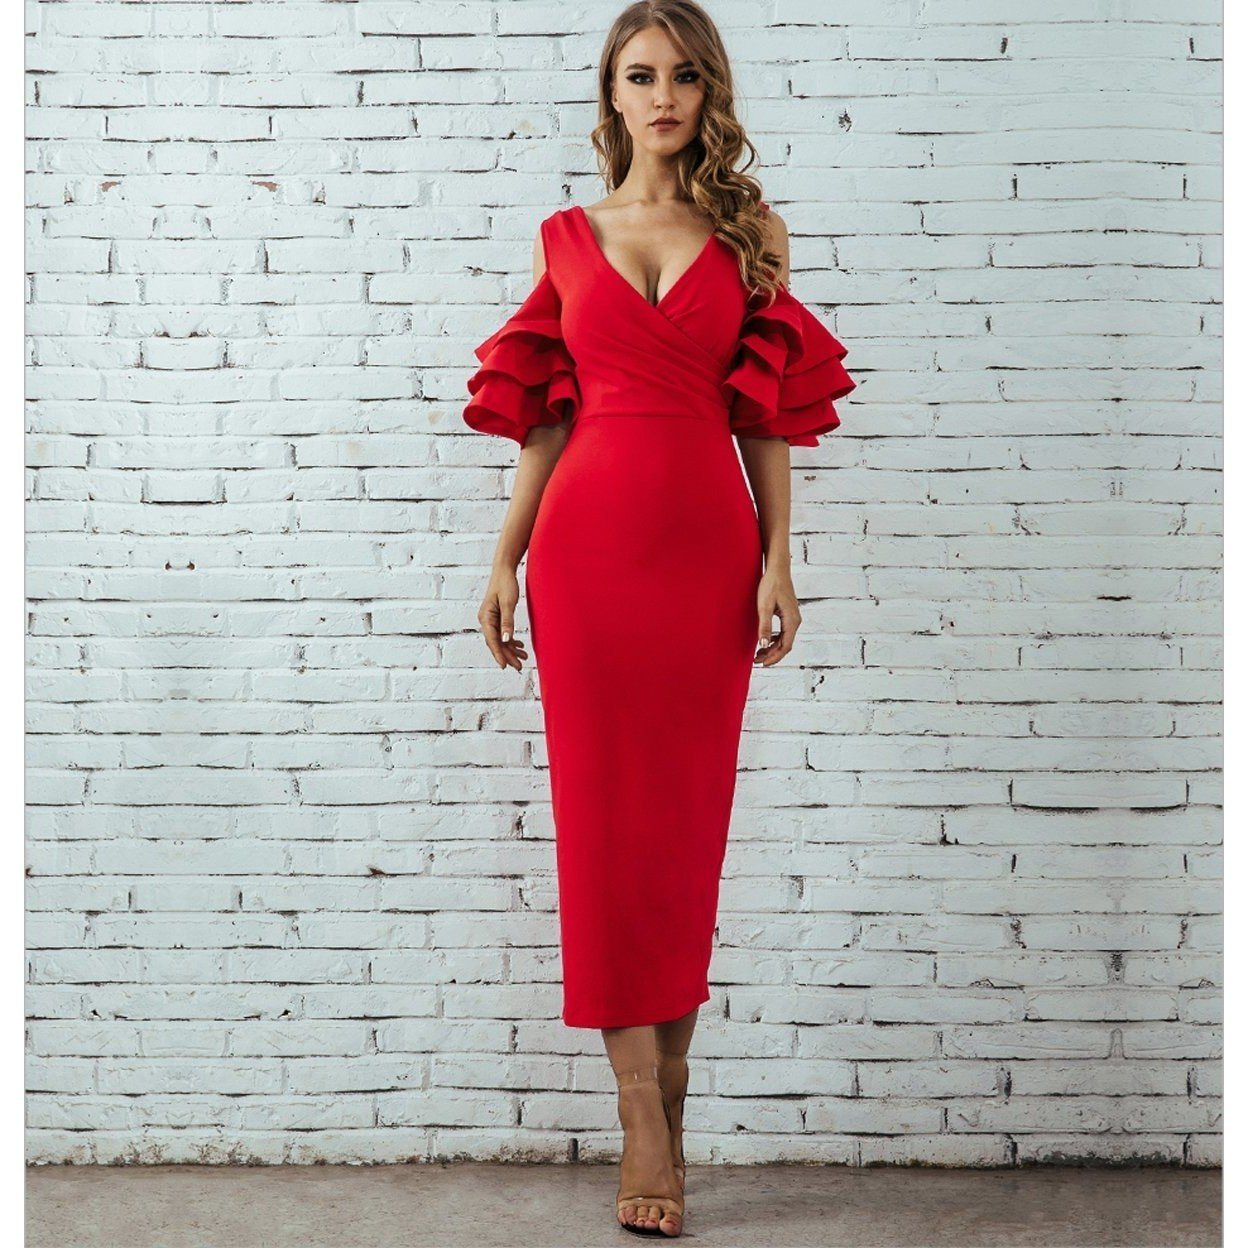 Lavinia Ruffles Formal Dress, Midi Dress - Viva Devine